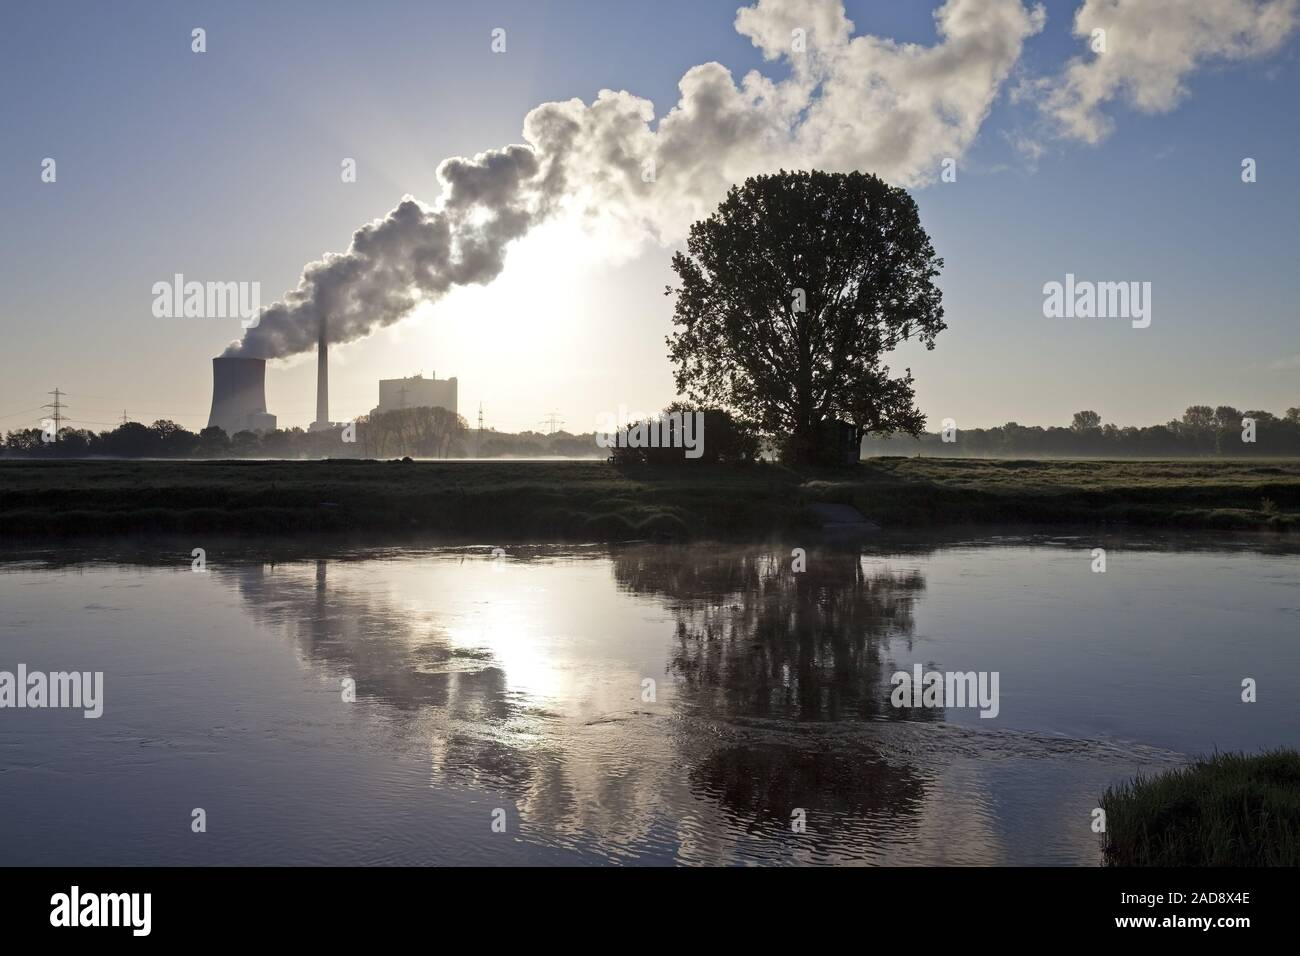 hard coal-fired power station Heyden, global warming, coal phase-out, Petershagen, Germany Europe Stock Photo